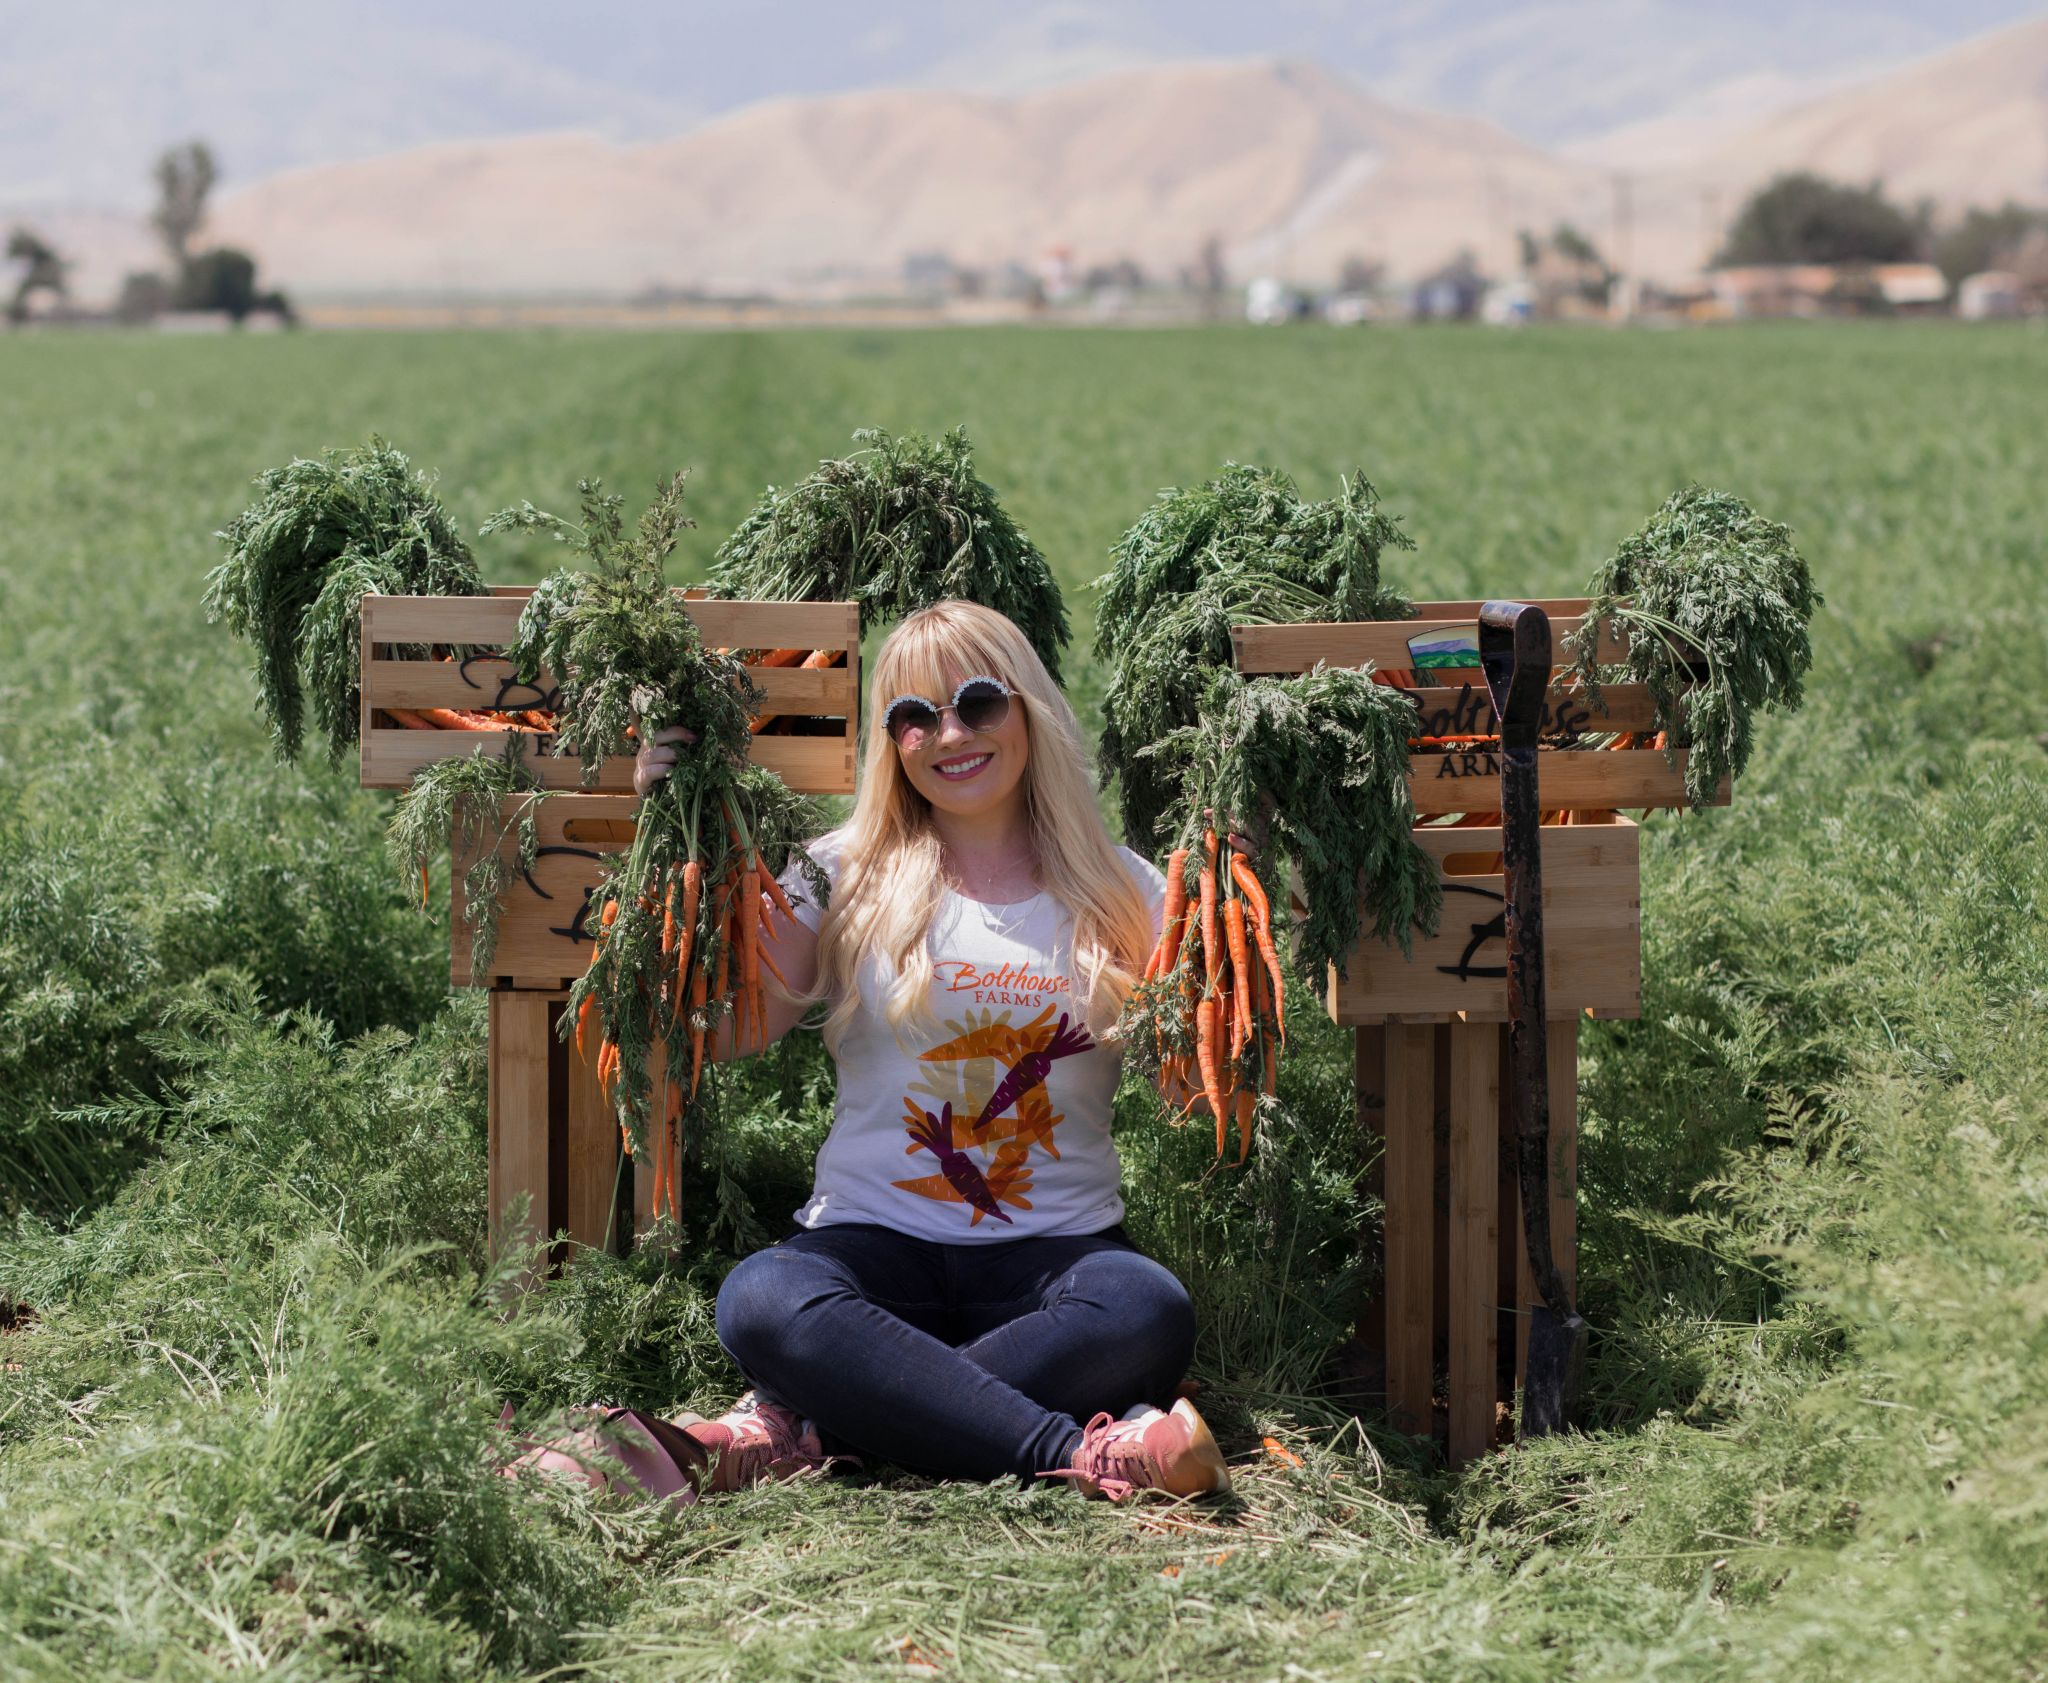 Elizabeth Hugen of Lizzie in Lace takes us along for a visit to Bolthouse Farms to see they make carrot juice!